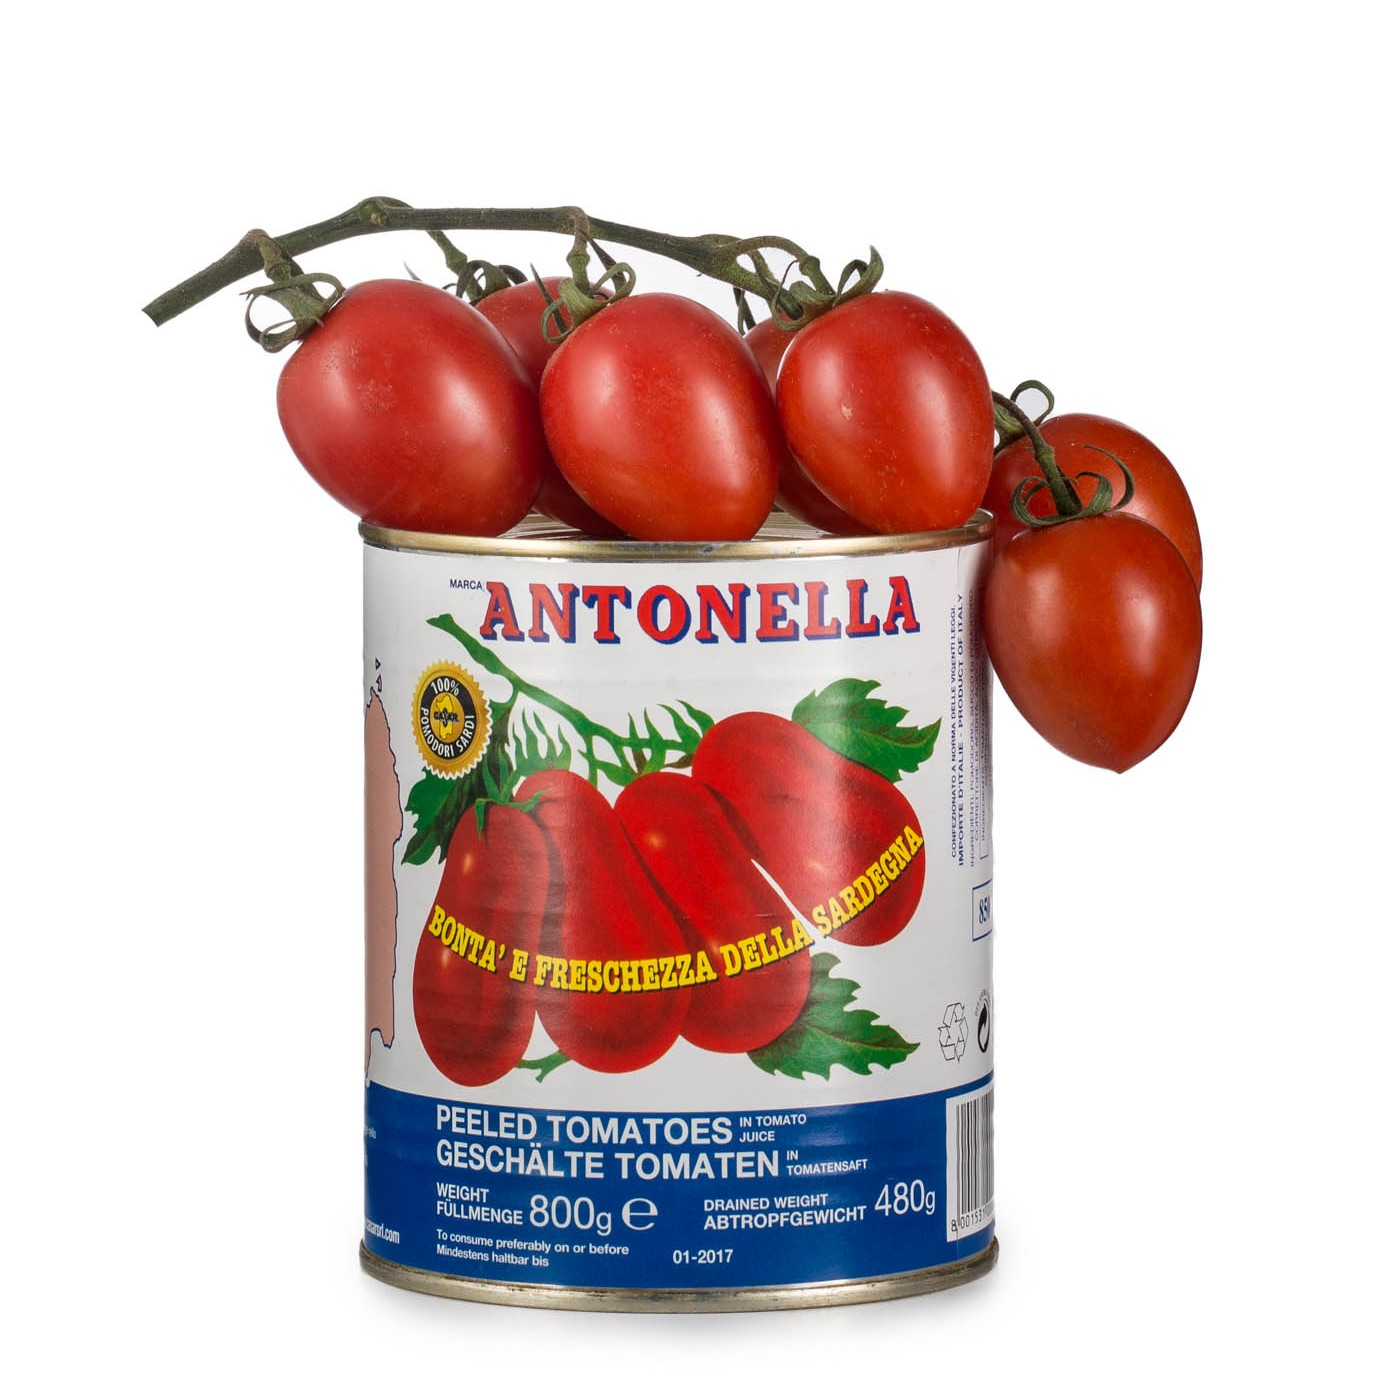 Whole Peeled Tomatoes 28 oz